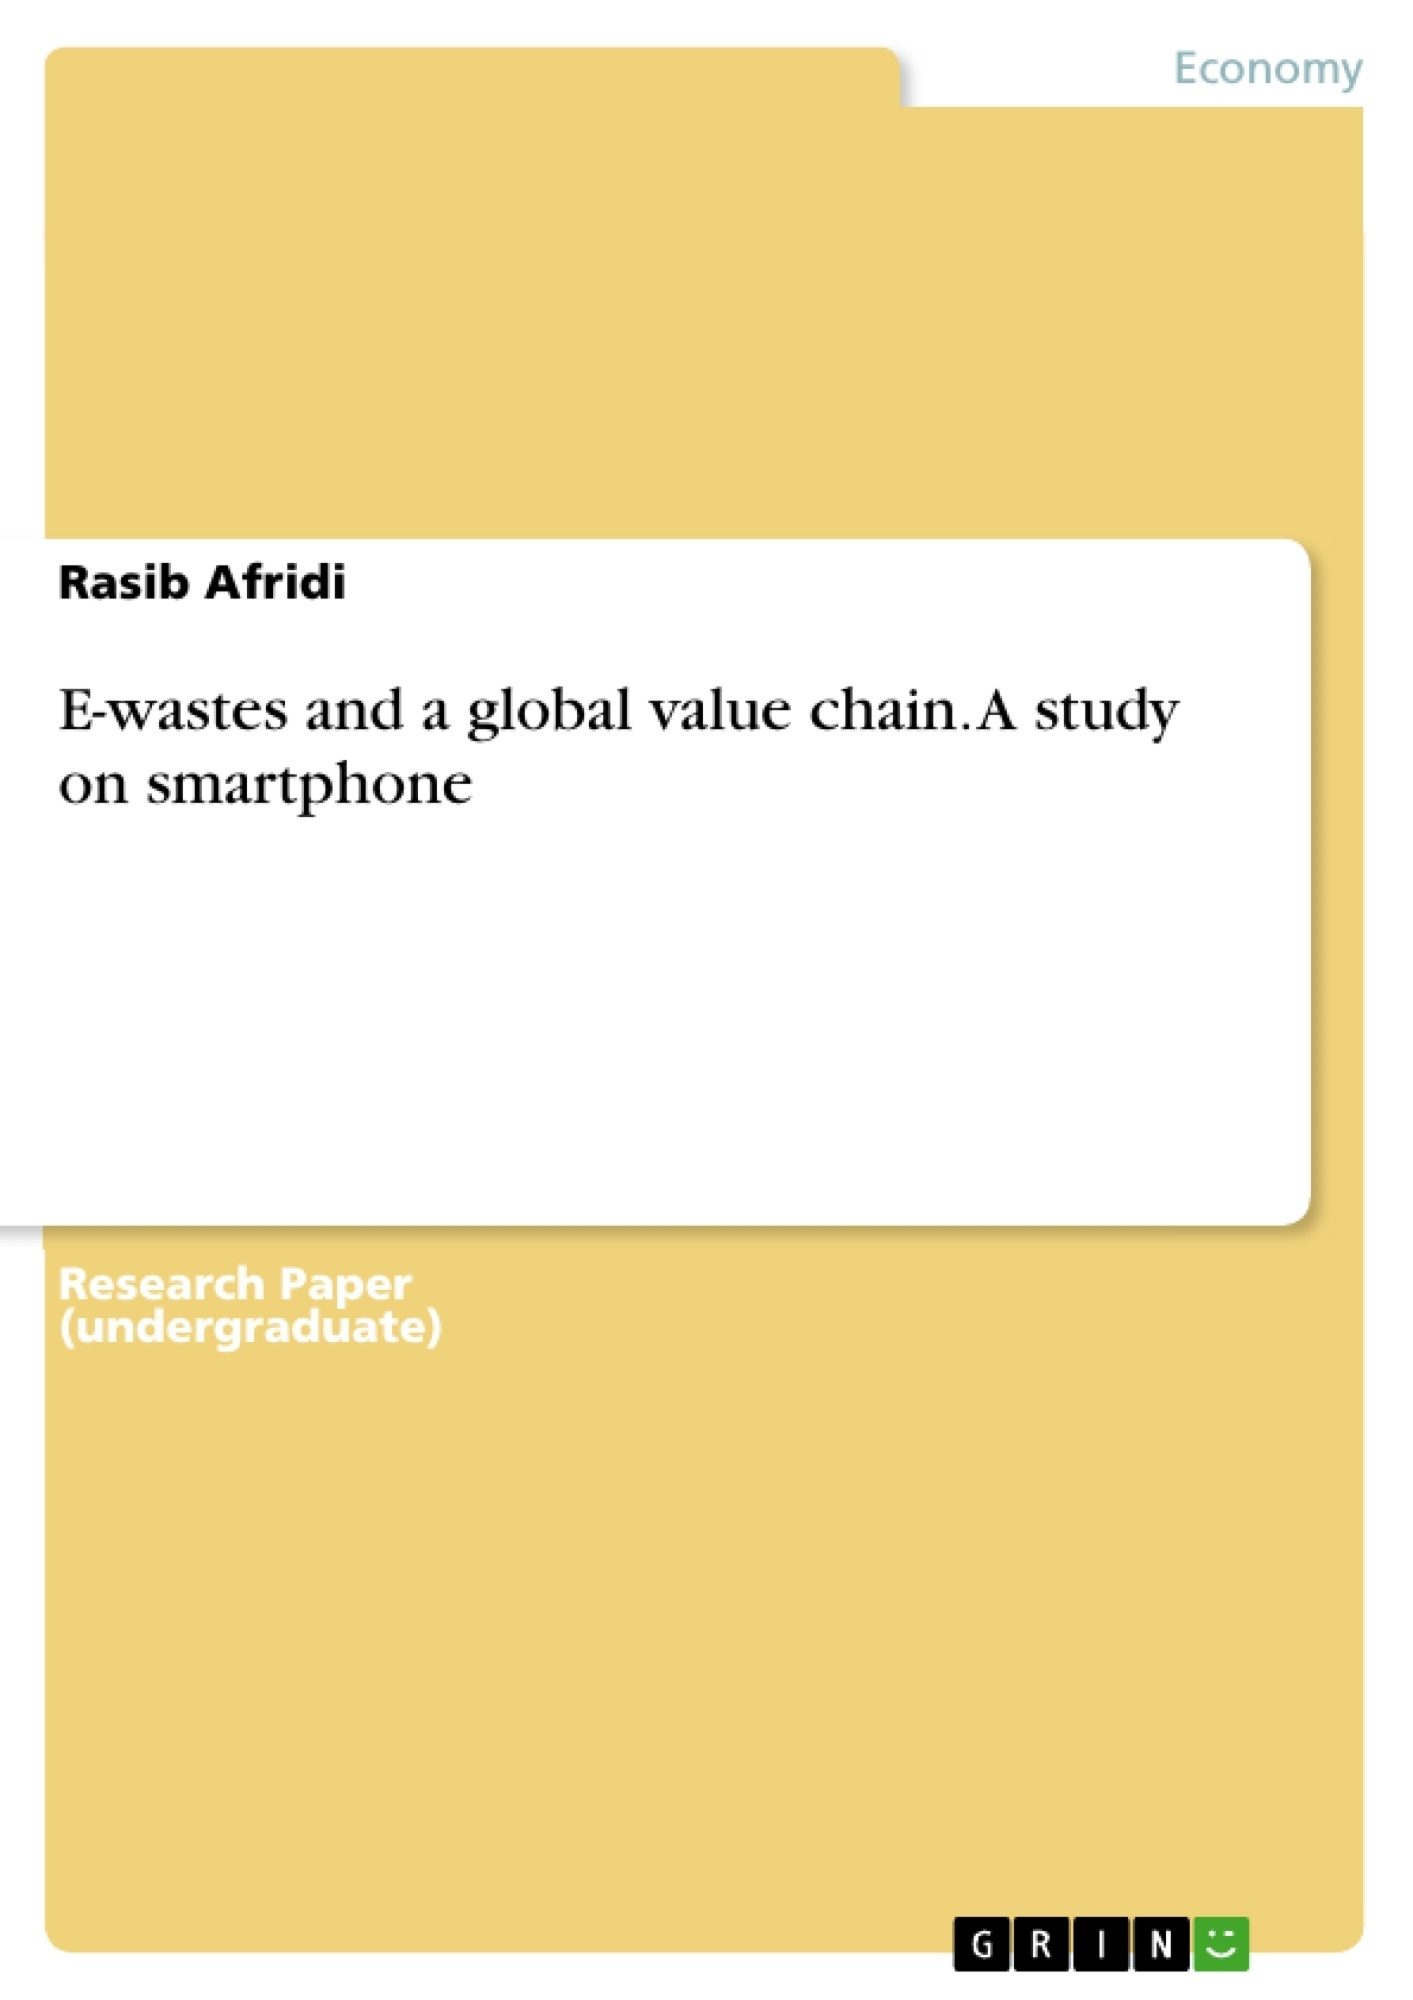 Title: E-wastes and a global value chain. A study on smartphone